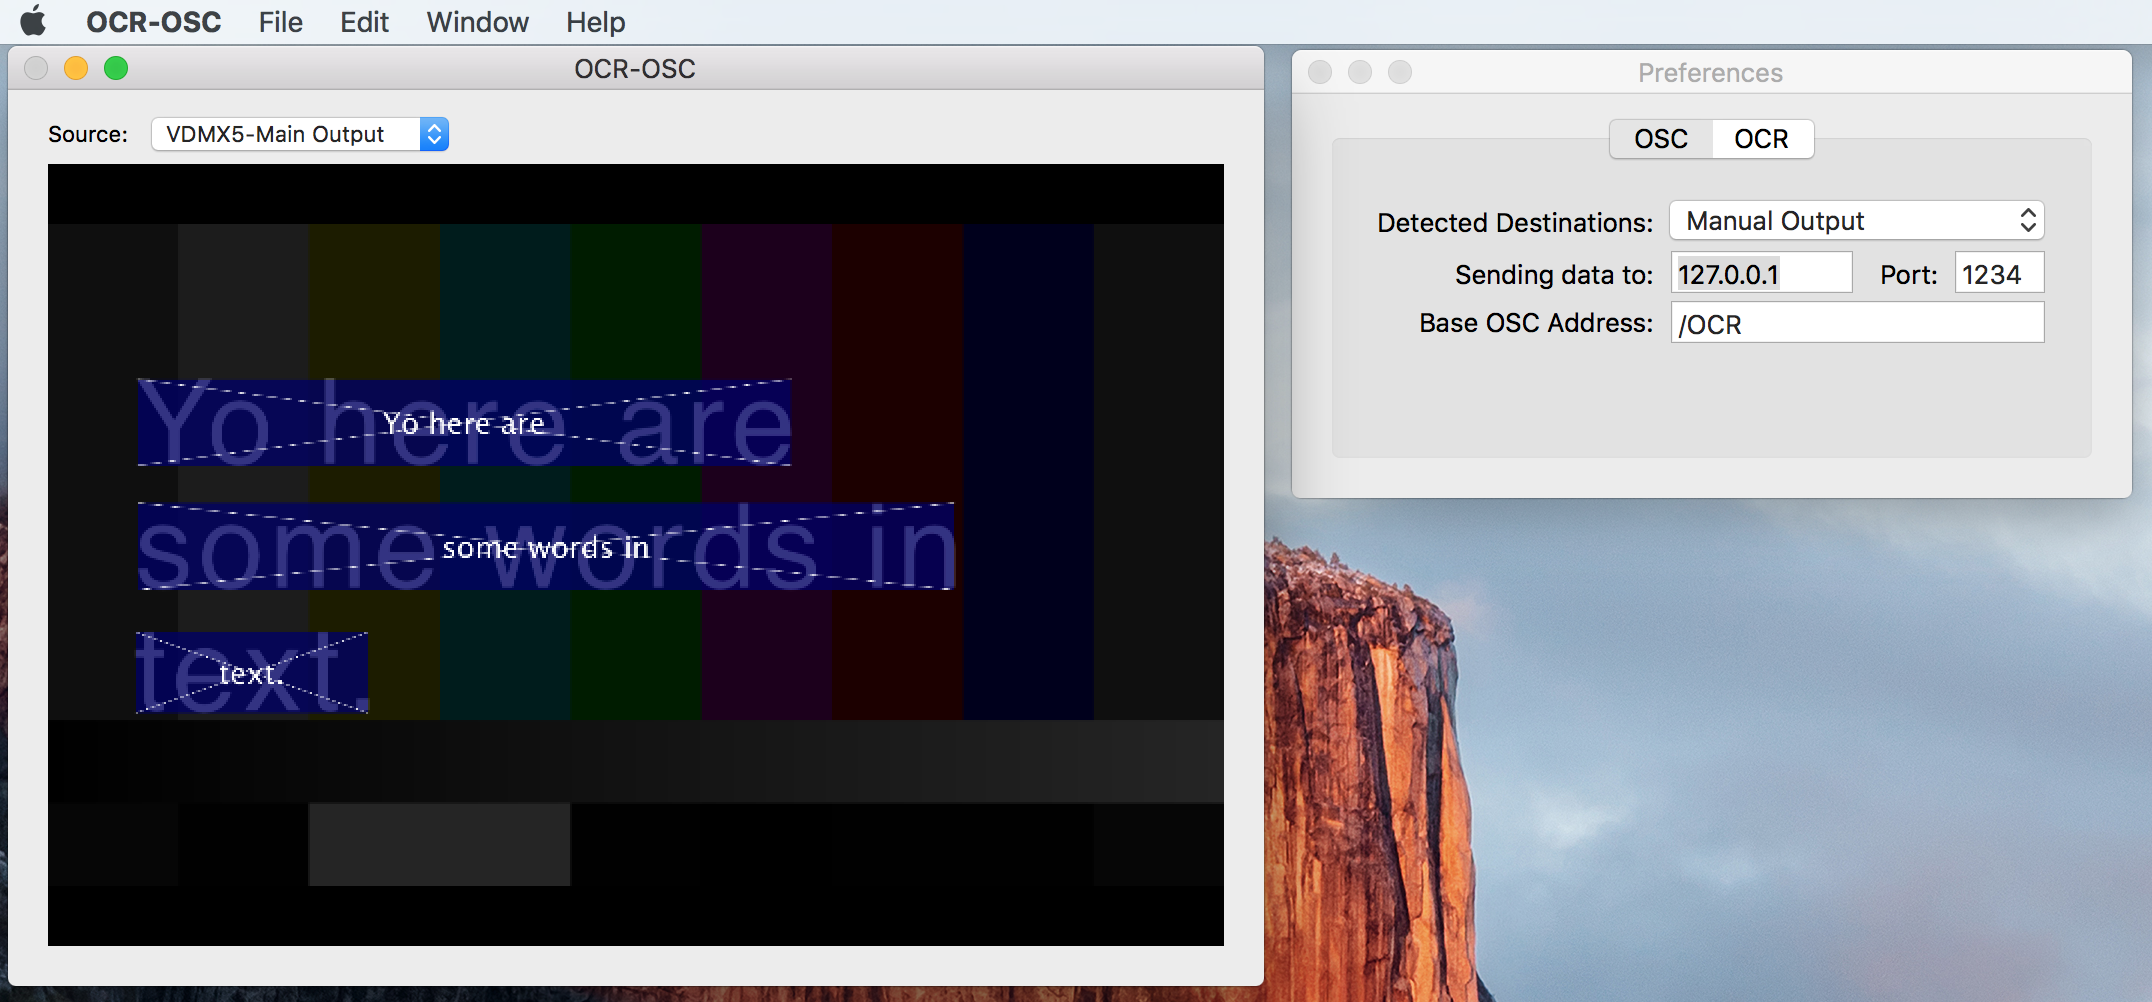 OCR-OSC display interface and preferences pane.